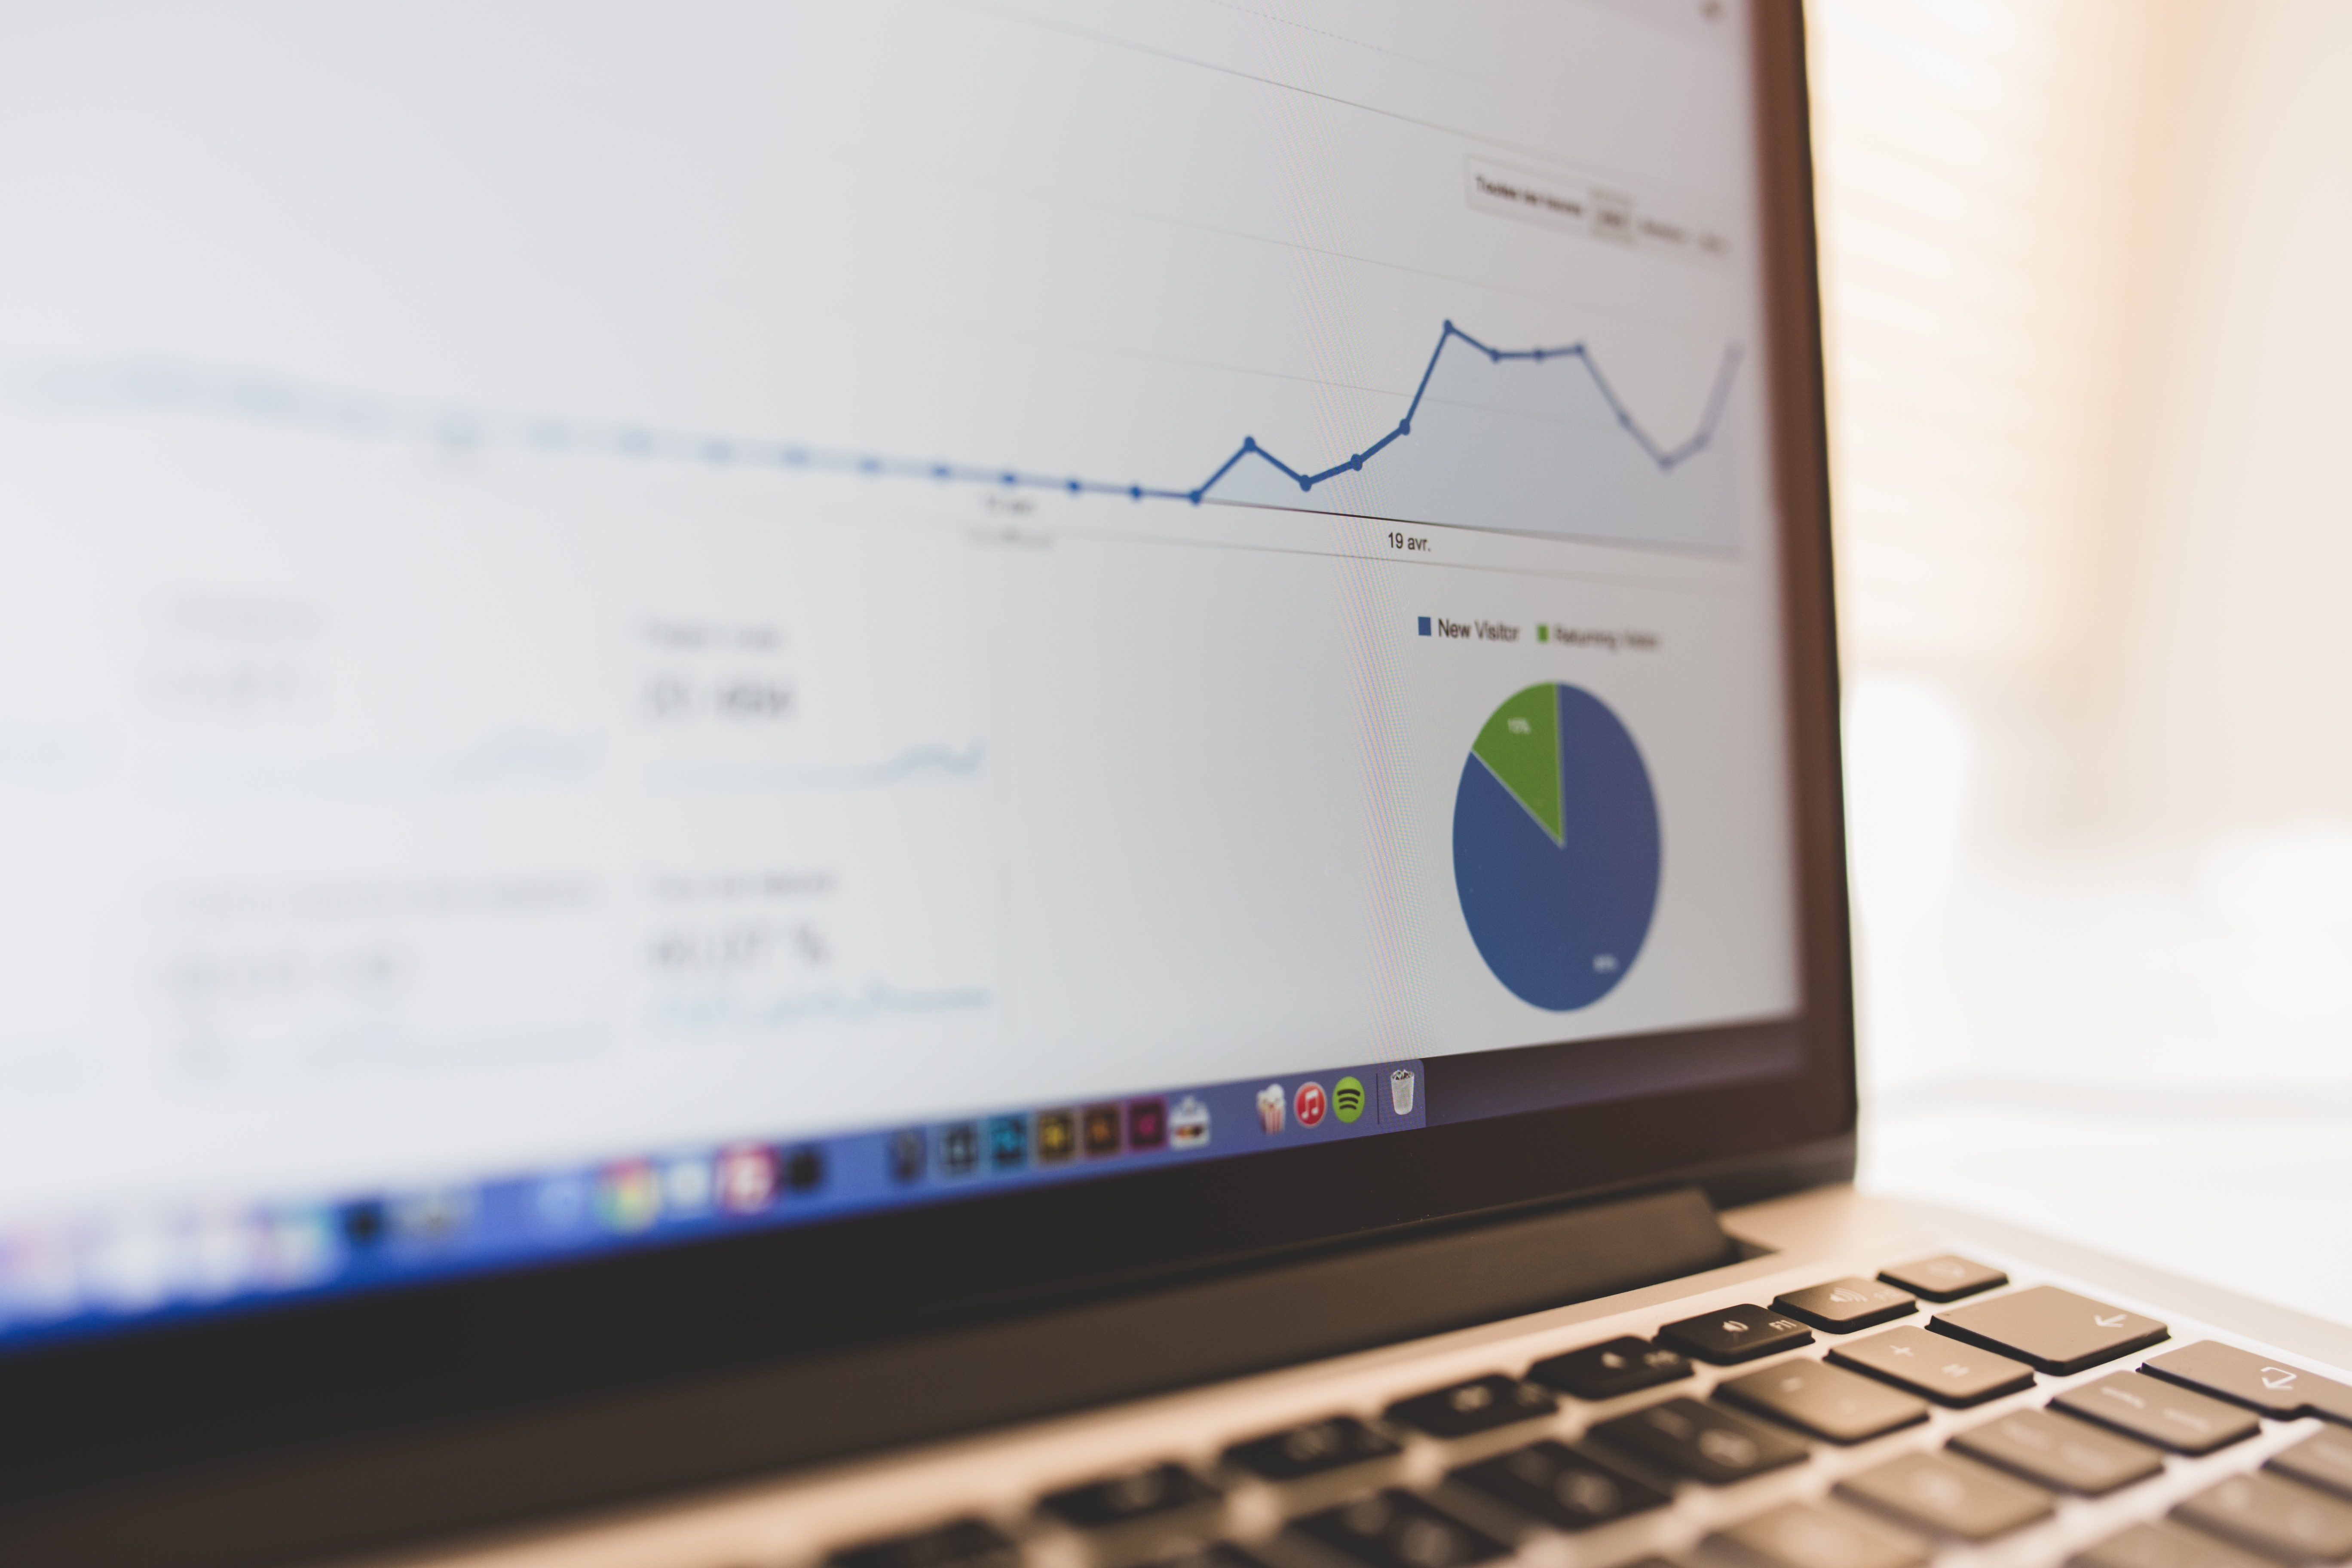 Watch your metrics during the public phase of a crowdfunding campaign